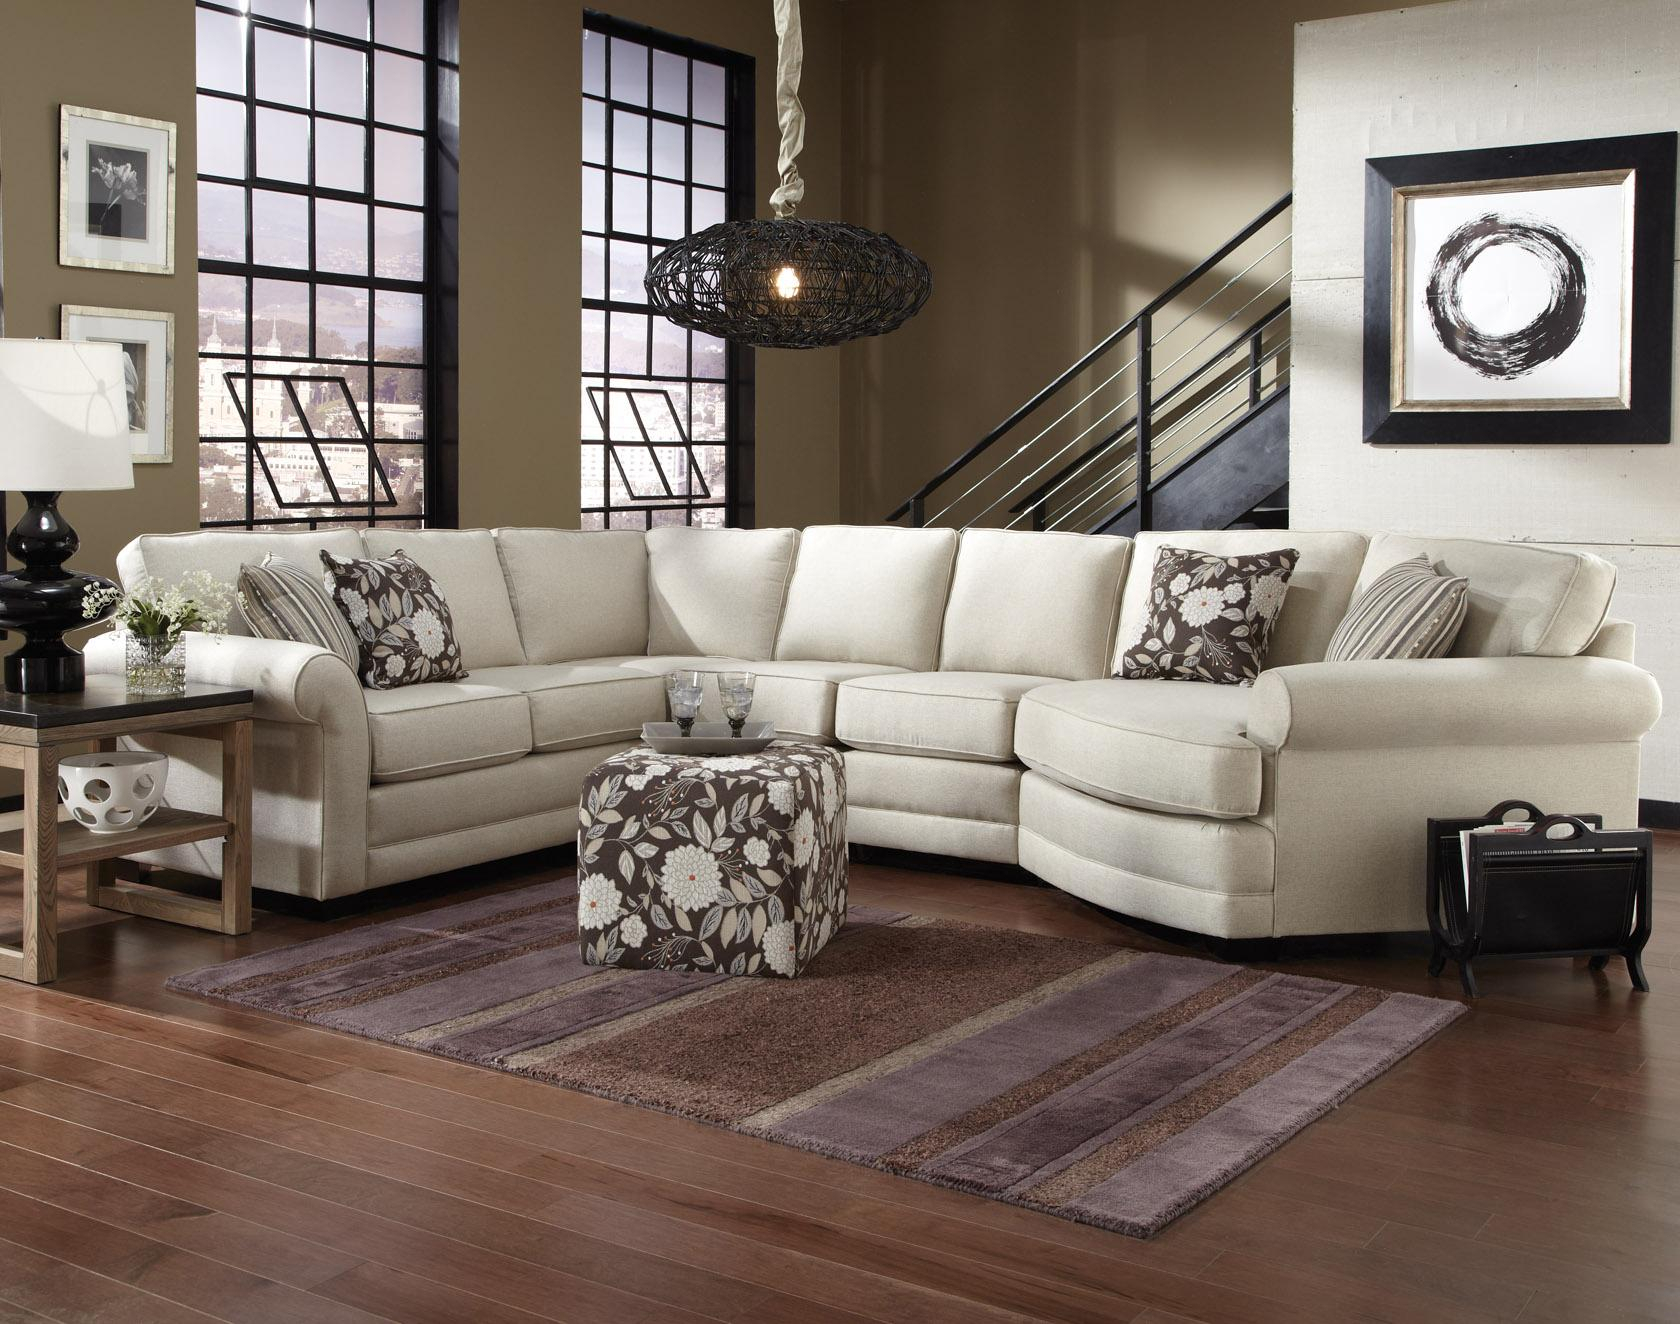 England Brantley 5 Seat Sectional Sofa With Cuddler | Dunk & Bright Within Landry Sofa Chairs (Photo 17 of 25)